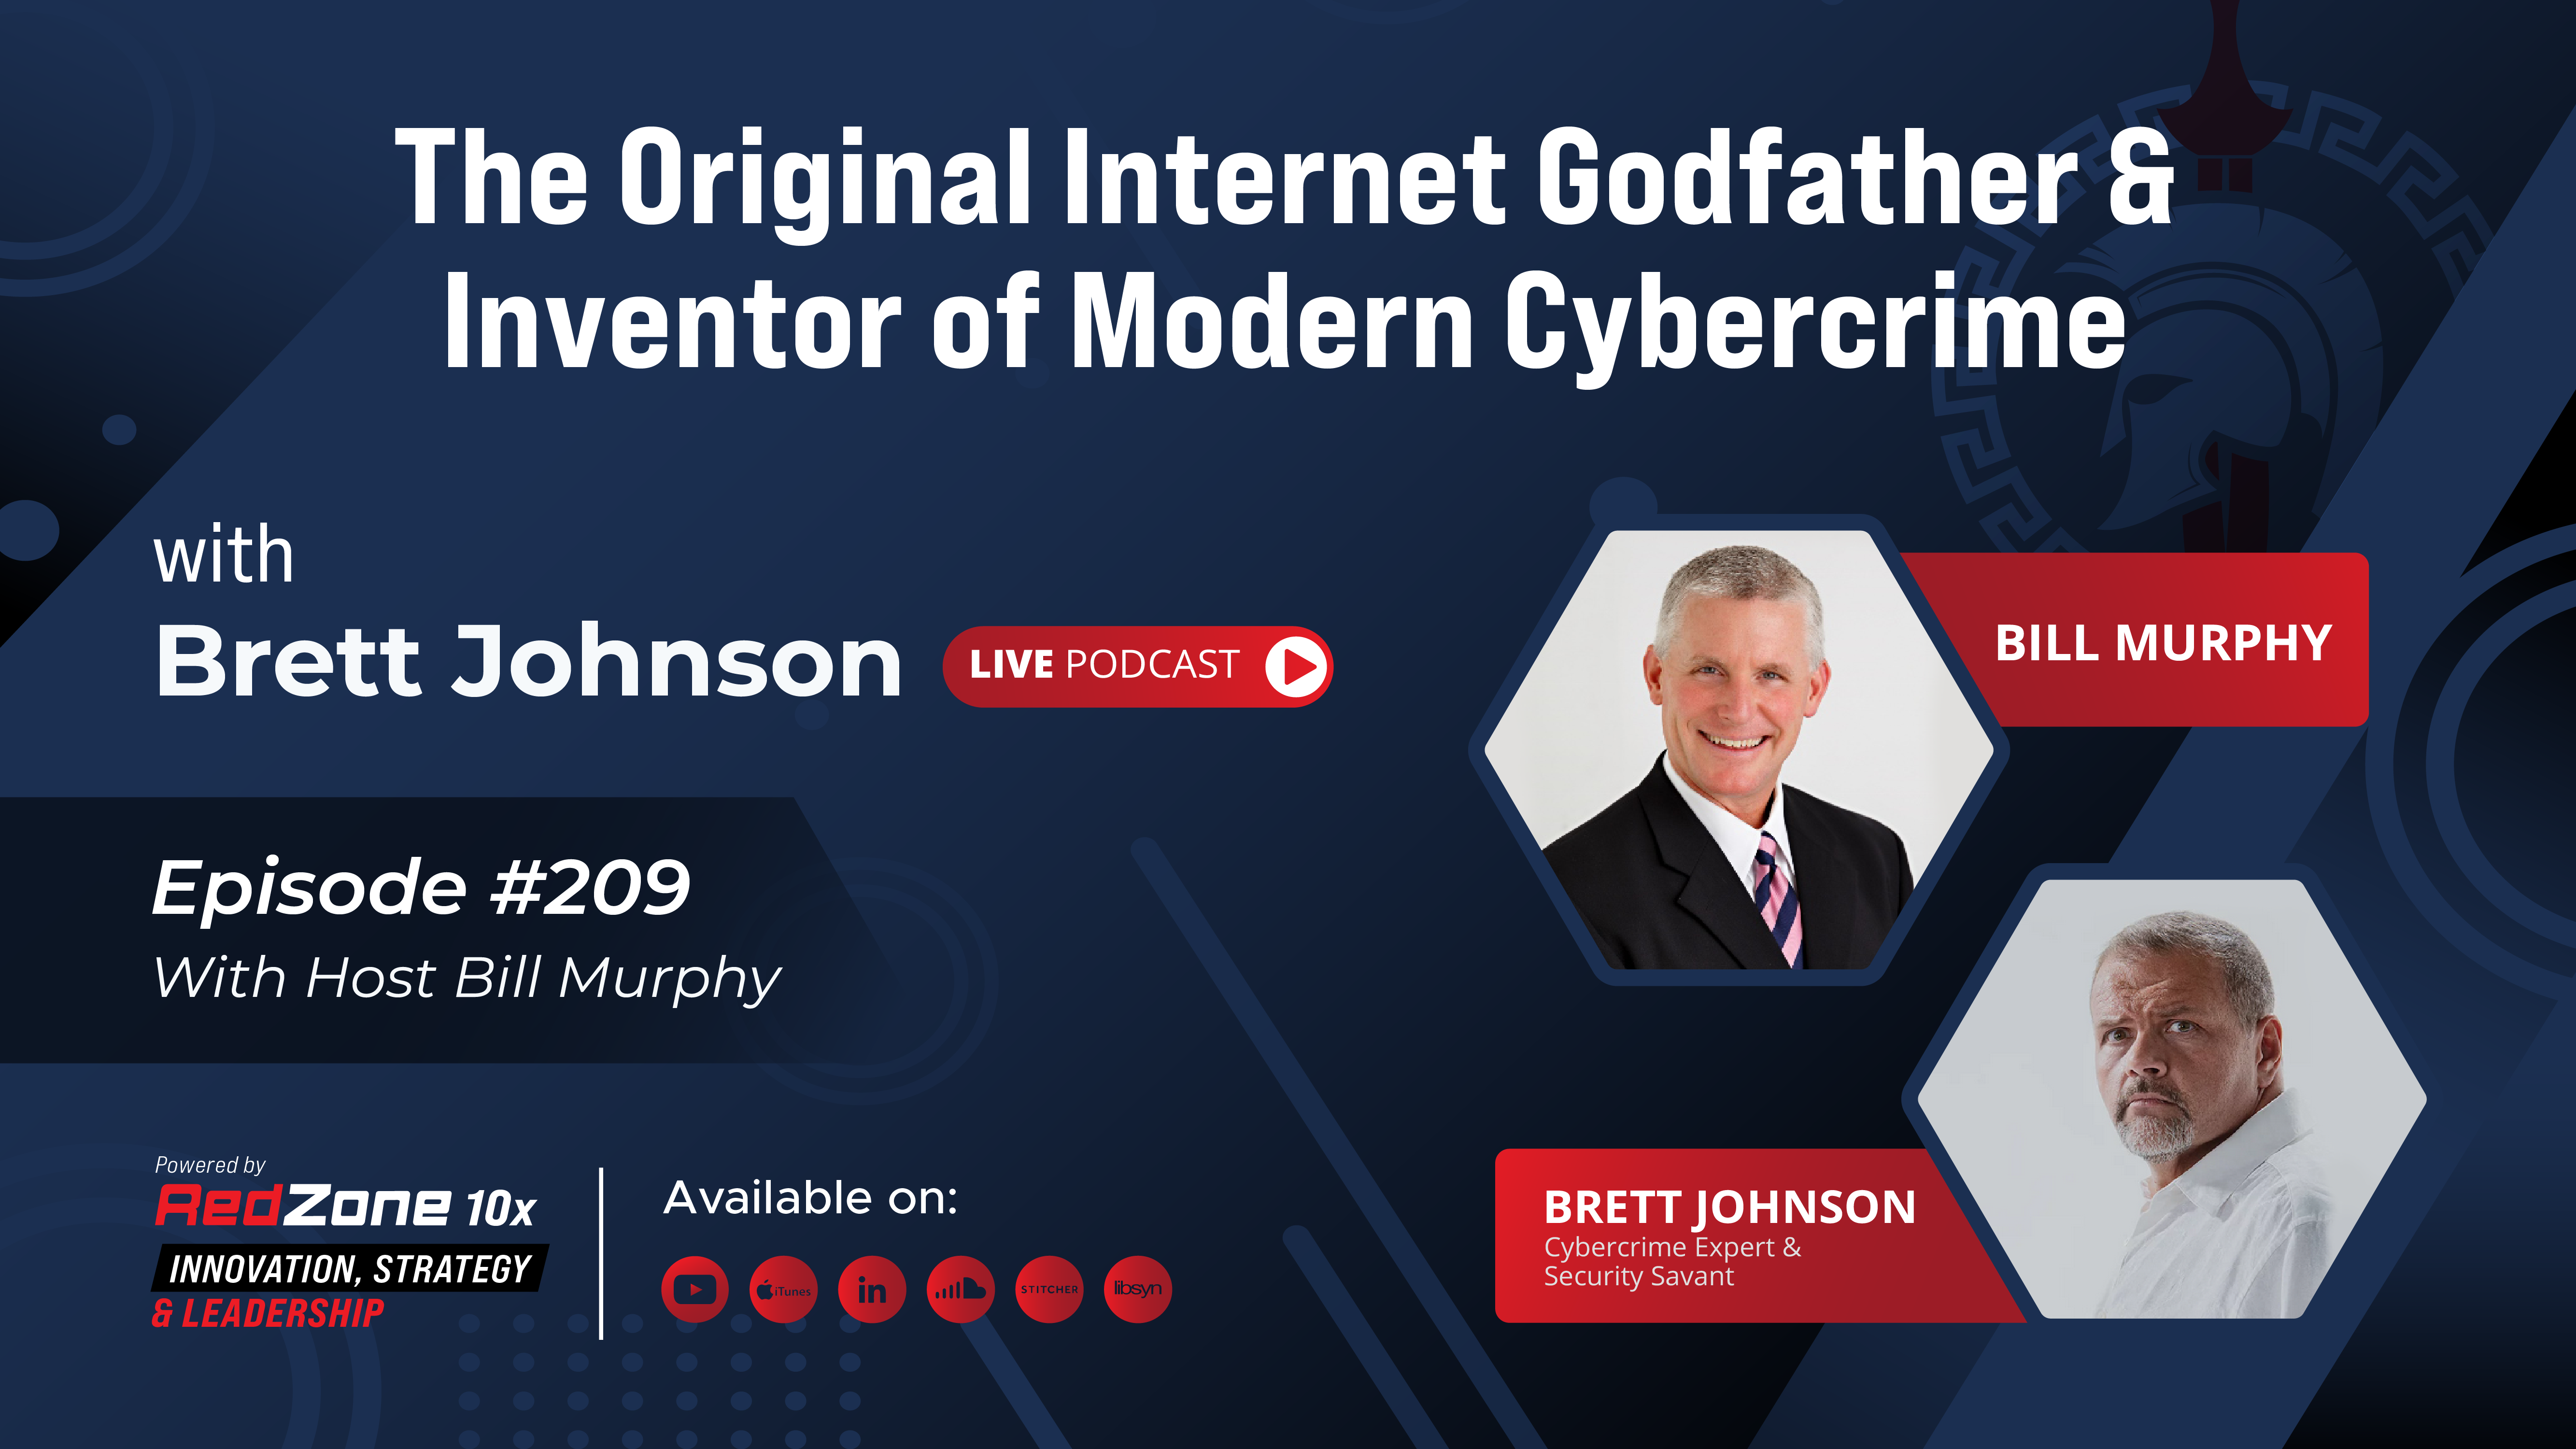 #209 The Original Internet Godfather and Inventor of Modern Cybercrime| Cyber Crime Expert & Security Savant, Brett Johnson